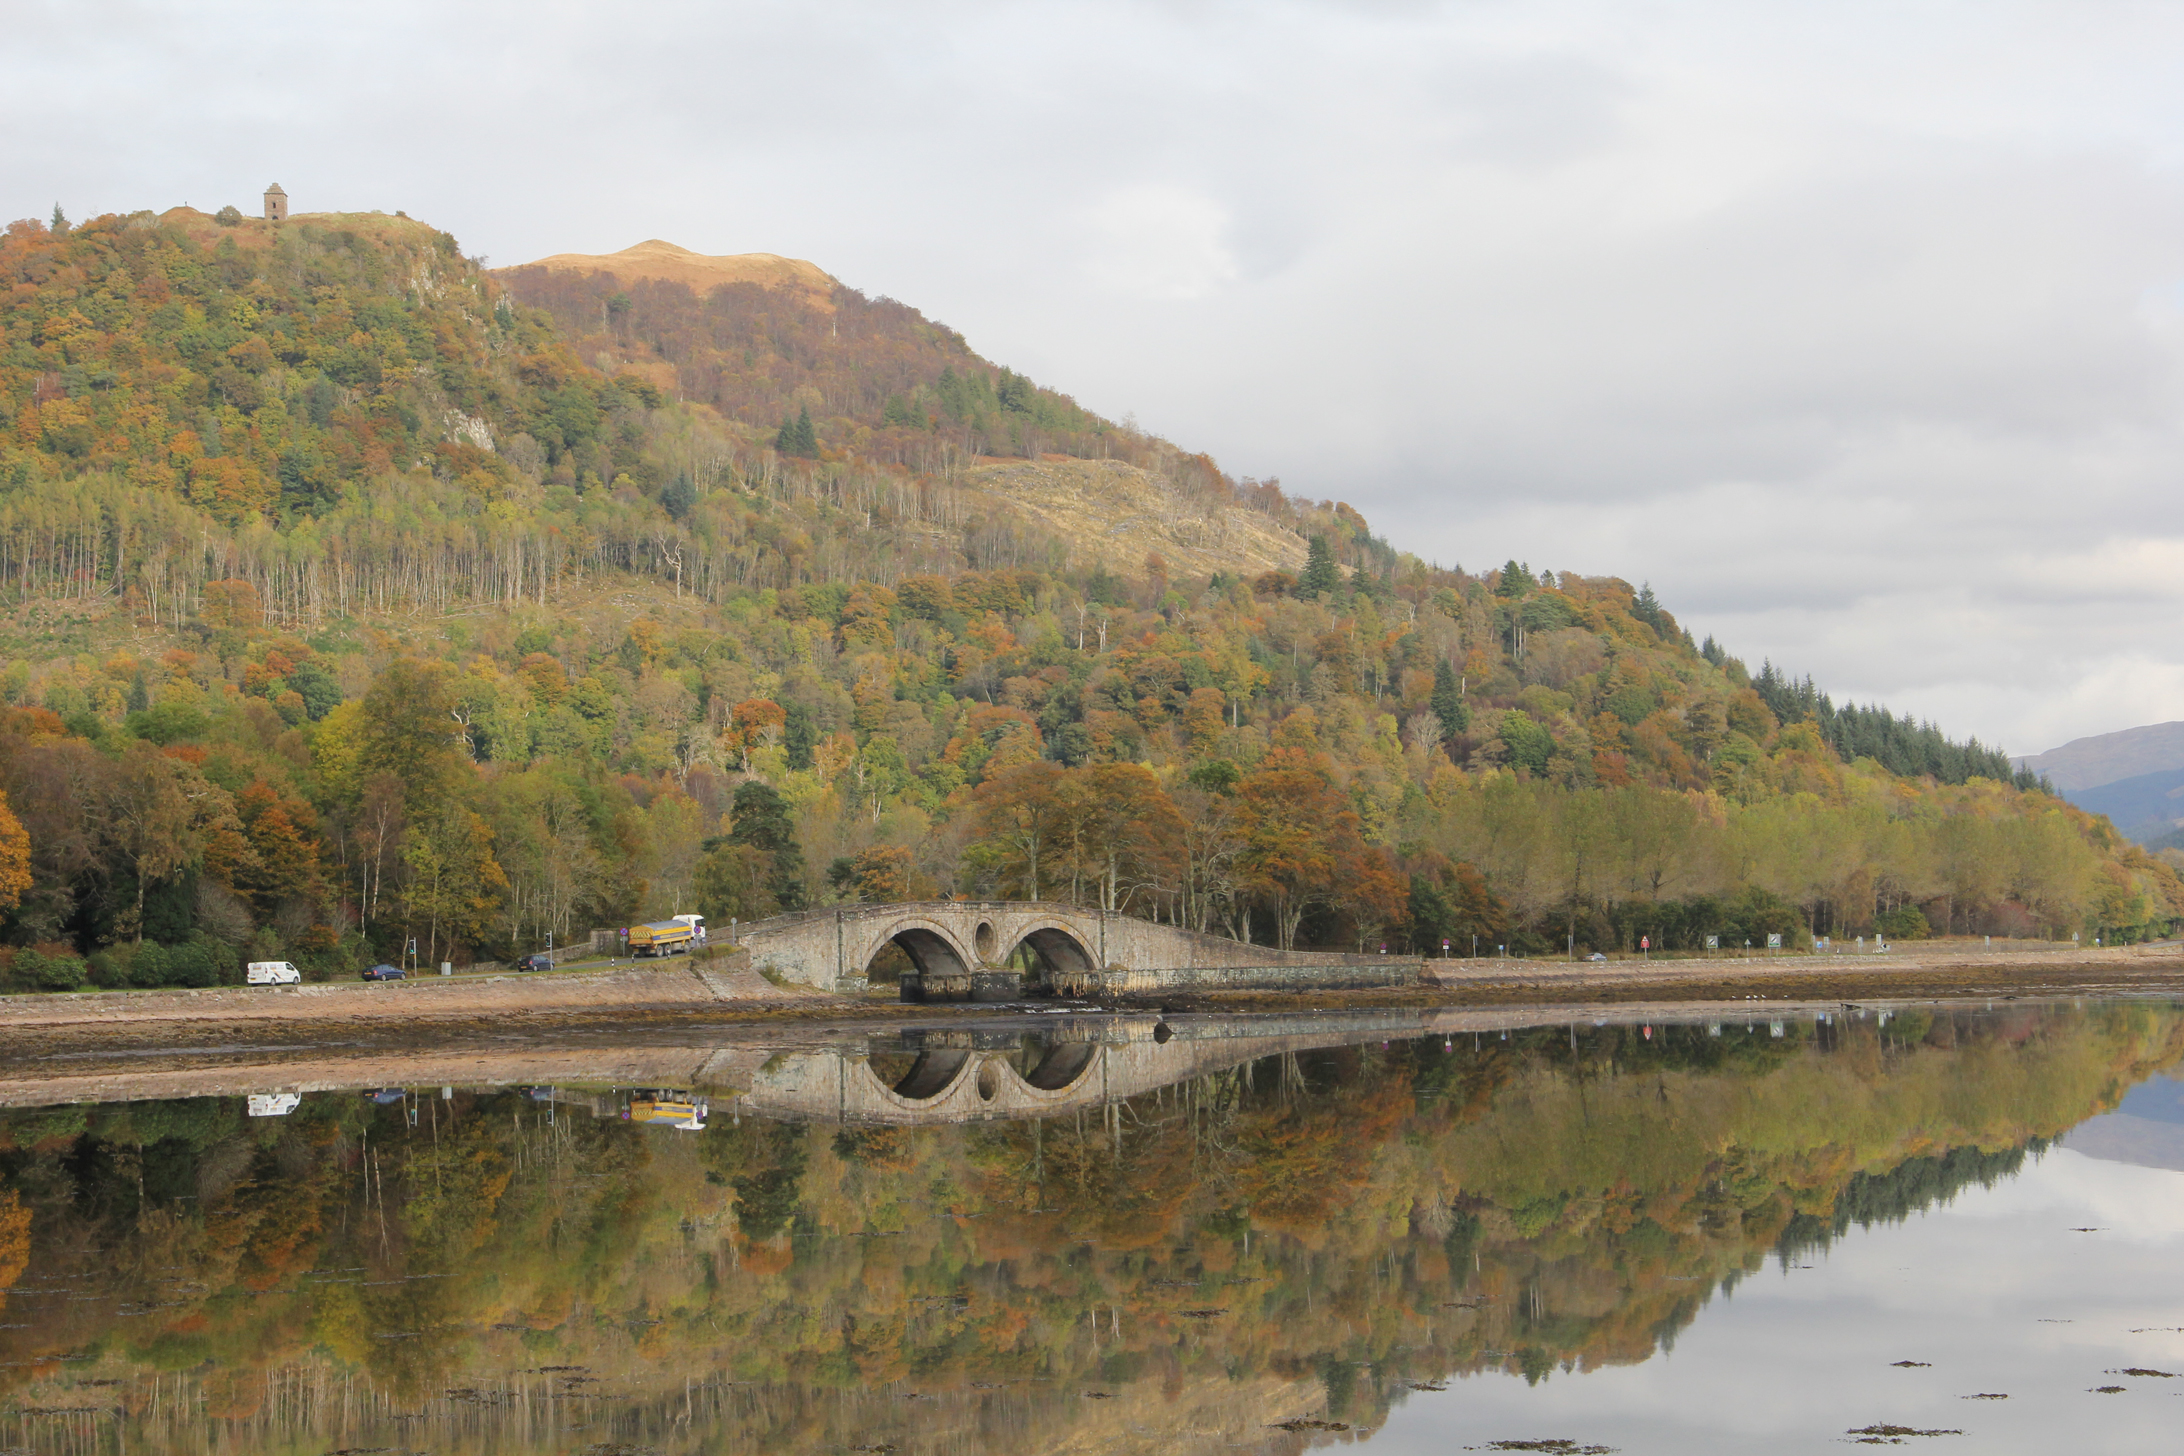 Inveraray bridge